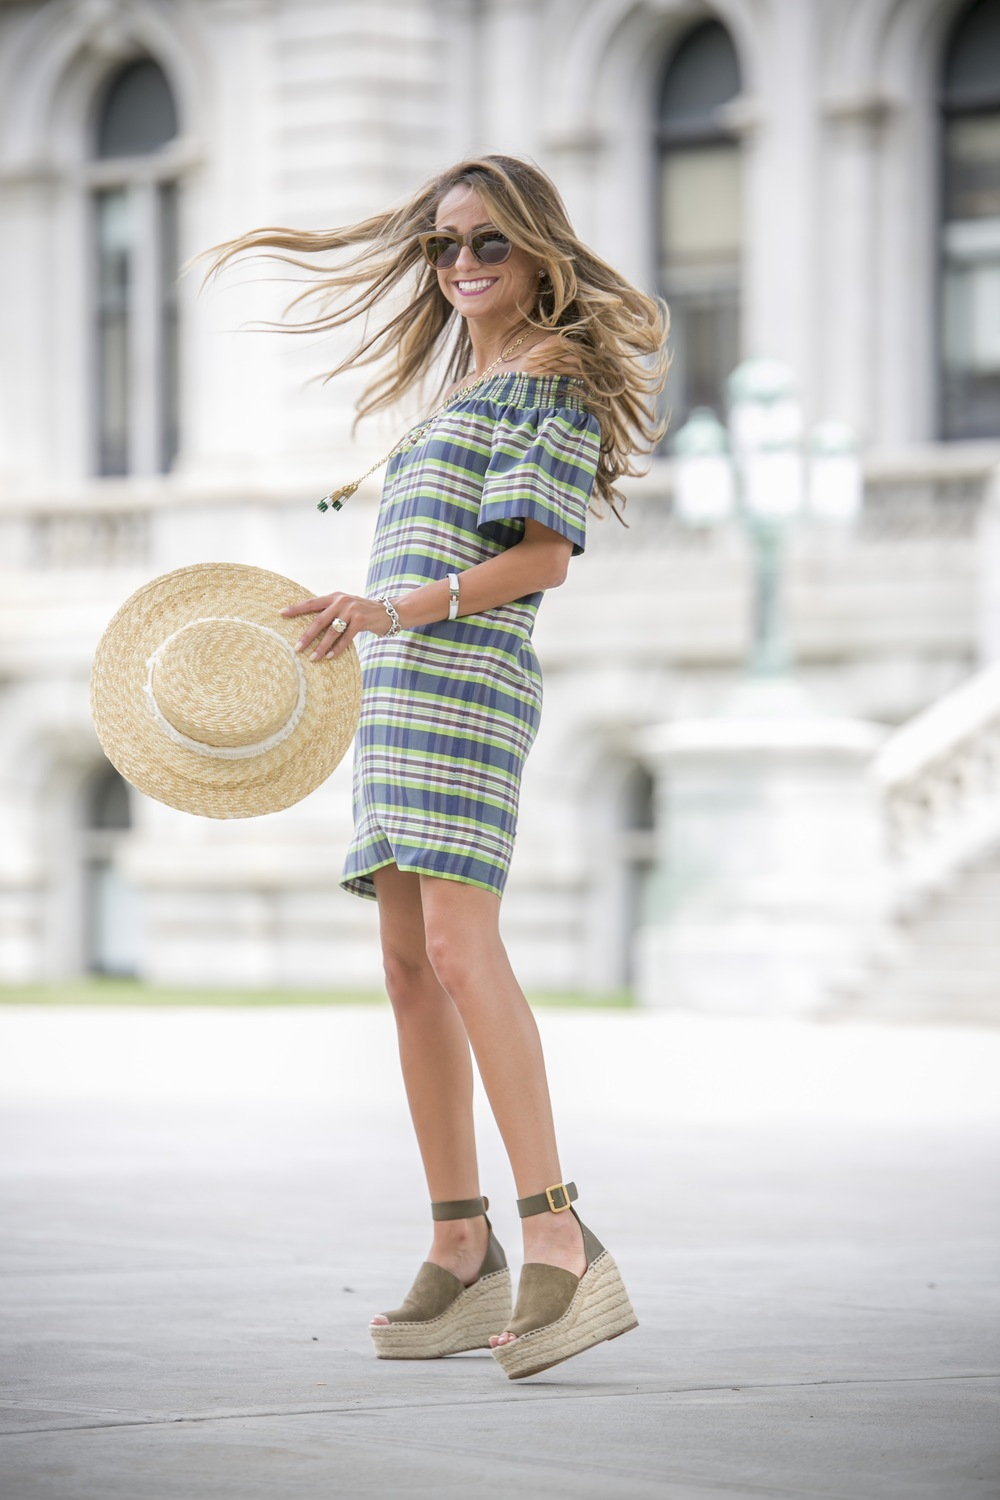 Dress: J.Crew |Necklace:J.Crew( similar )|Hat: Rag&Bone |Wedges: Chloe |Sunnies: J.Crew     Dino Petrocelli Photography